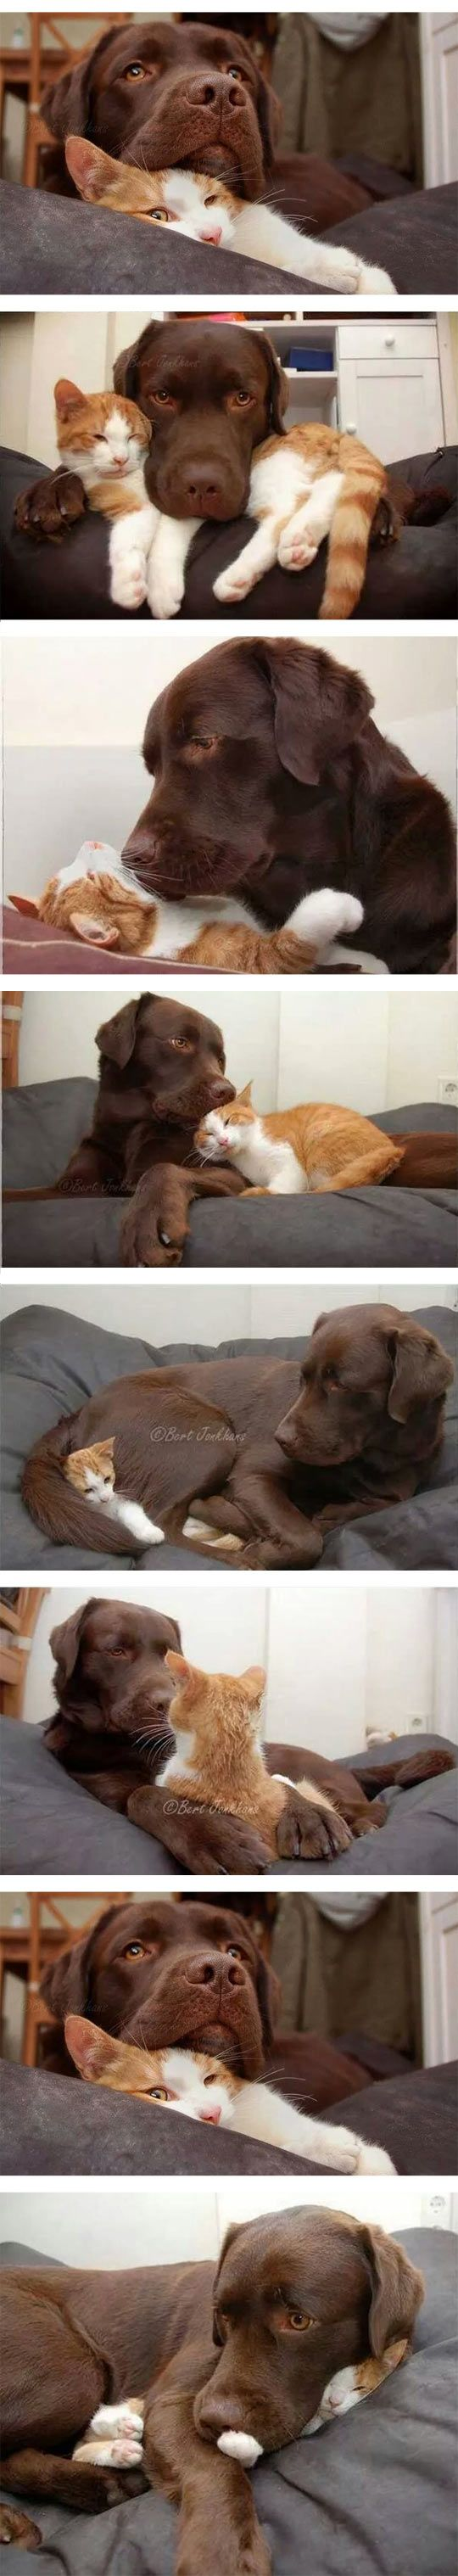 Chocolatey canine cat lover.